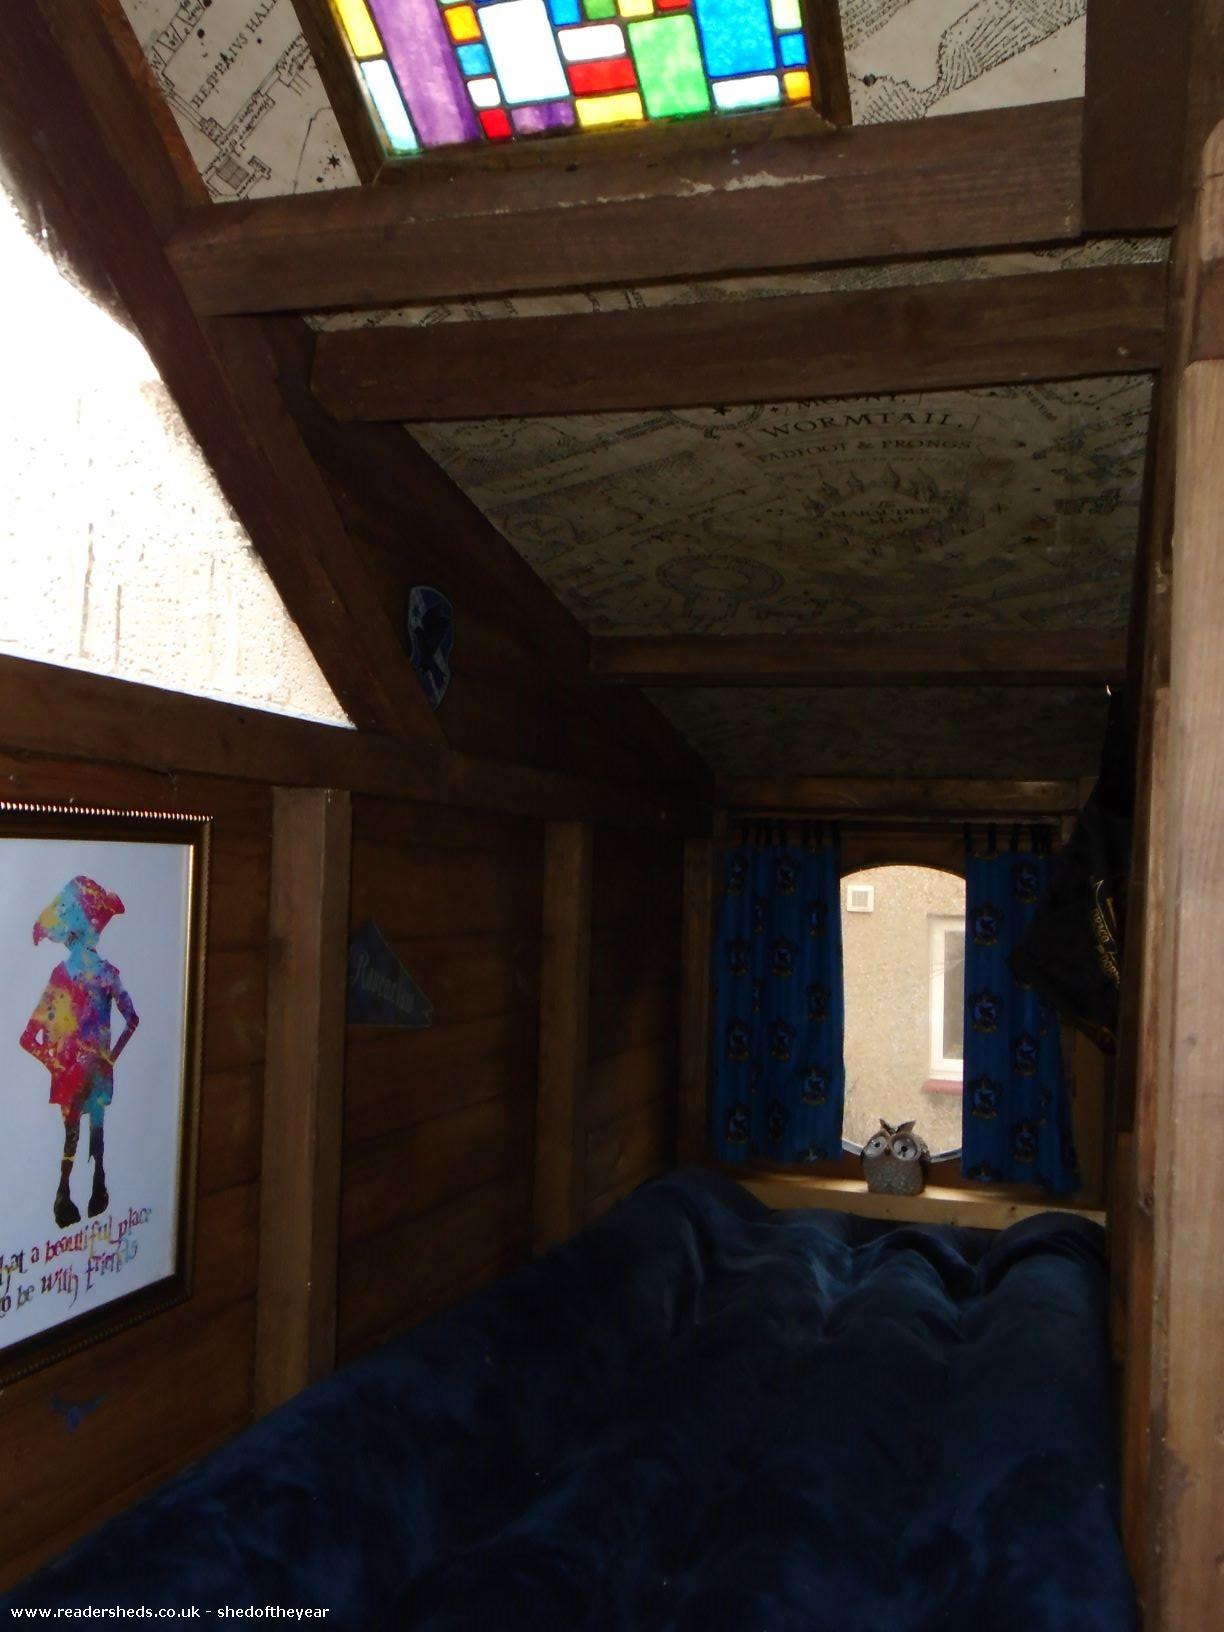 Photo of Ellie's Den, entry to Shed of the year